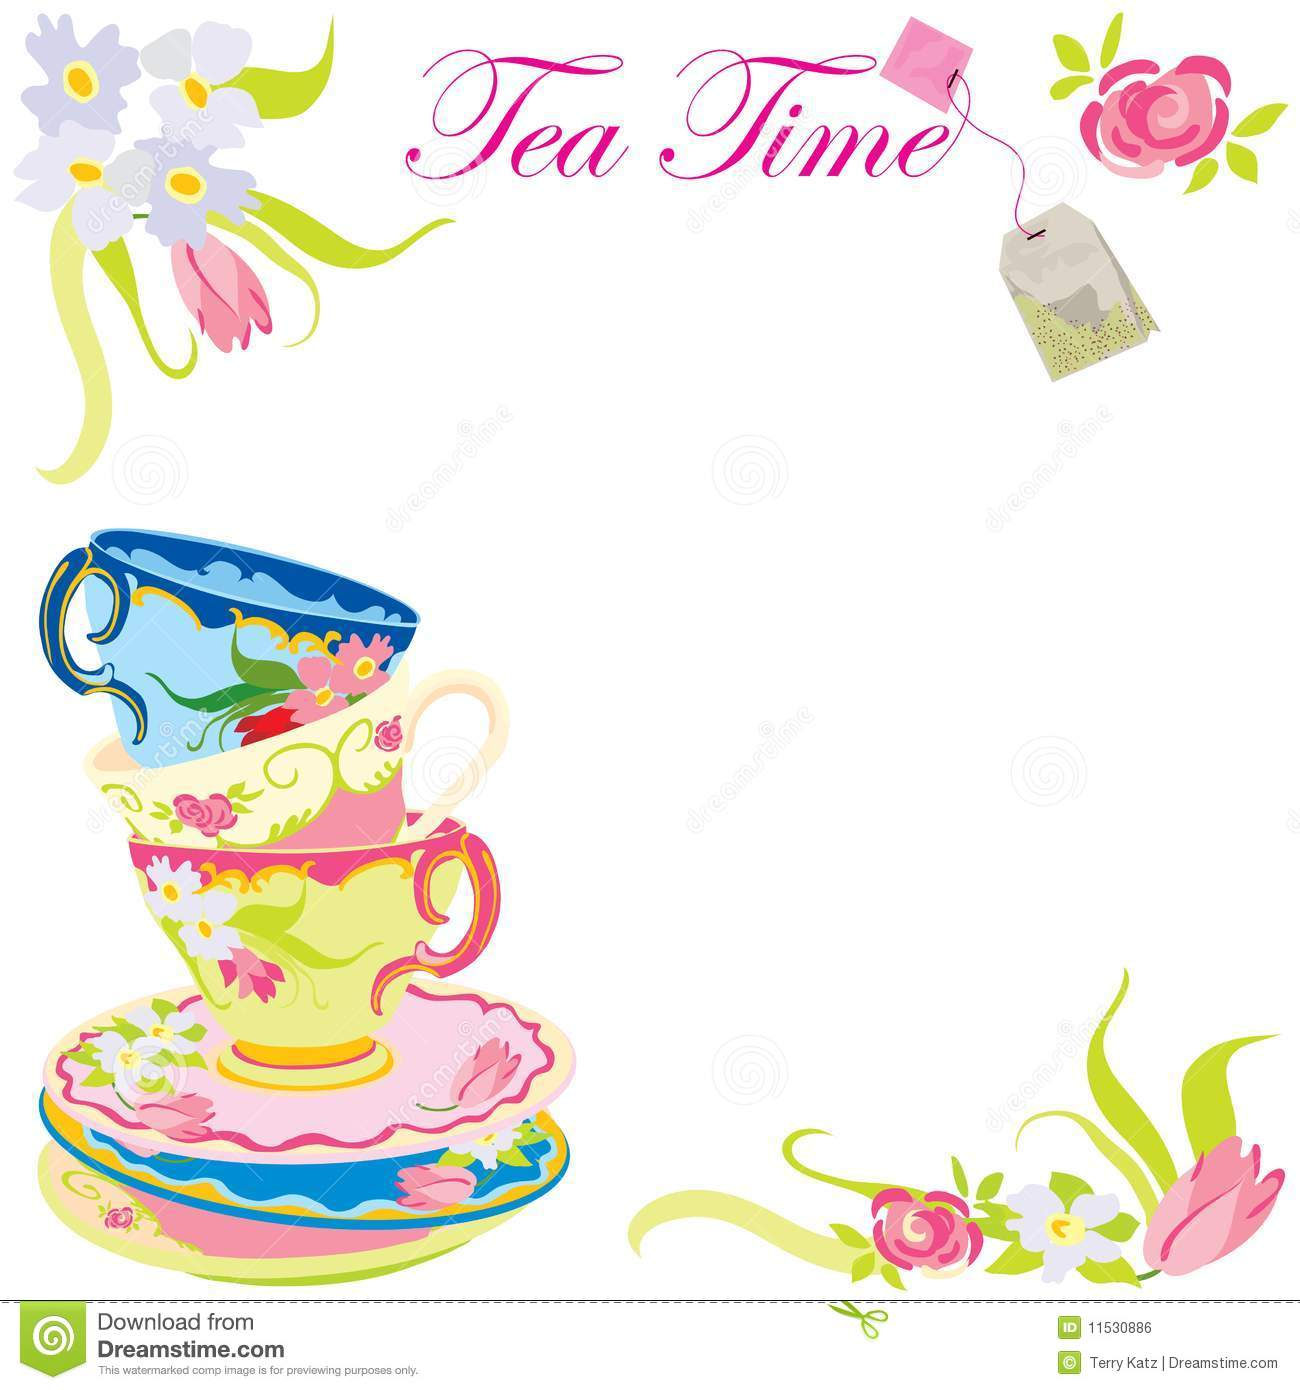 Tea TIme party invitation. stock vector. Illustration of background ...